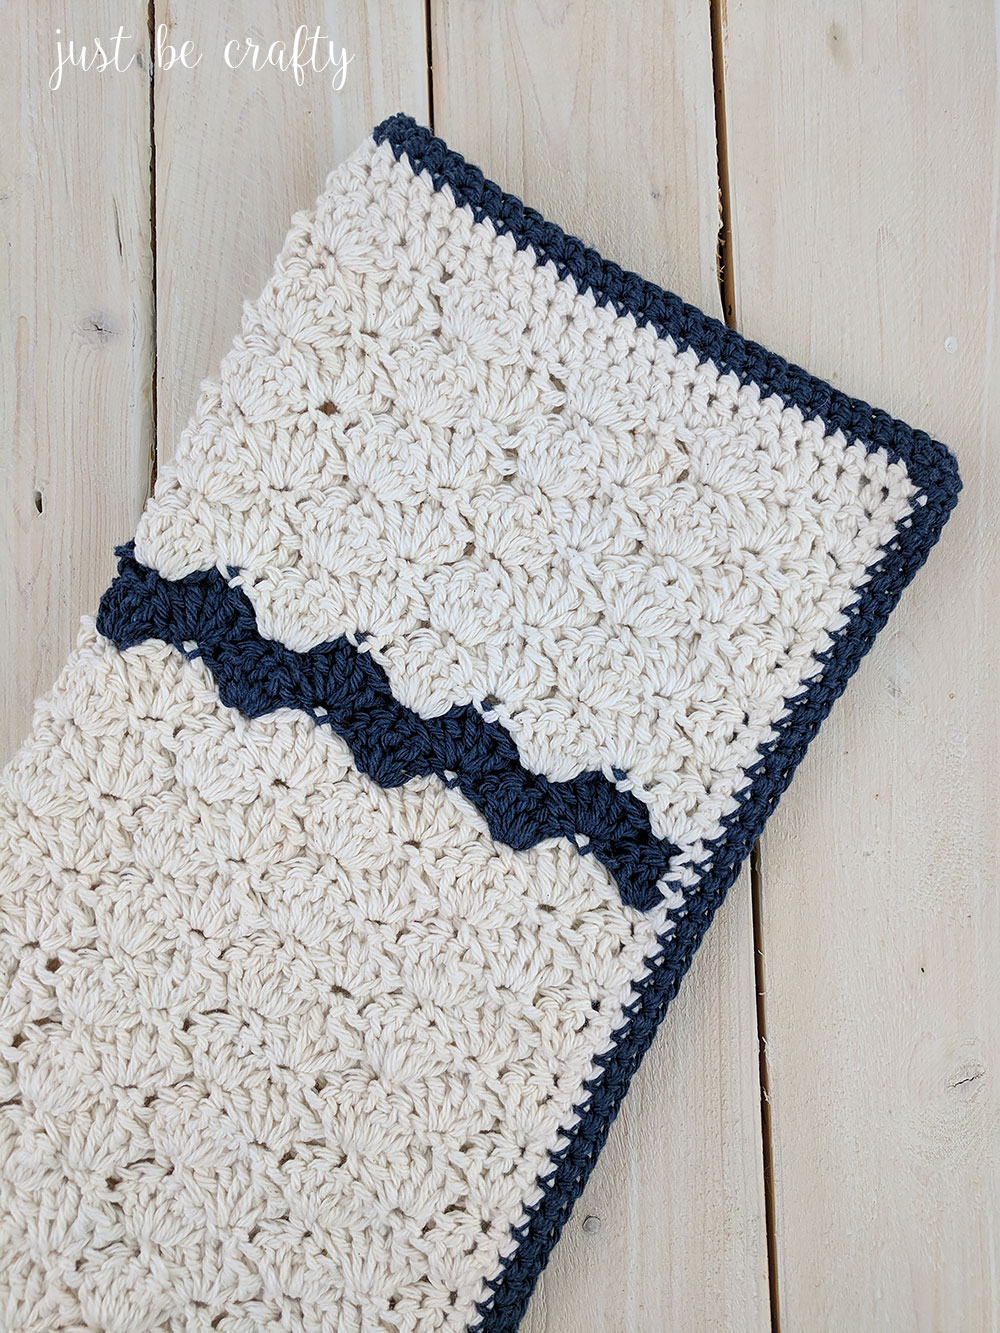 Crochet Farmhouse Table Dish Towel Pattern - Just Be Crafty